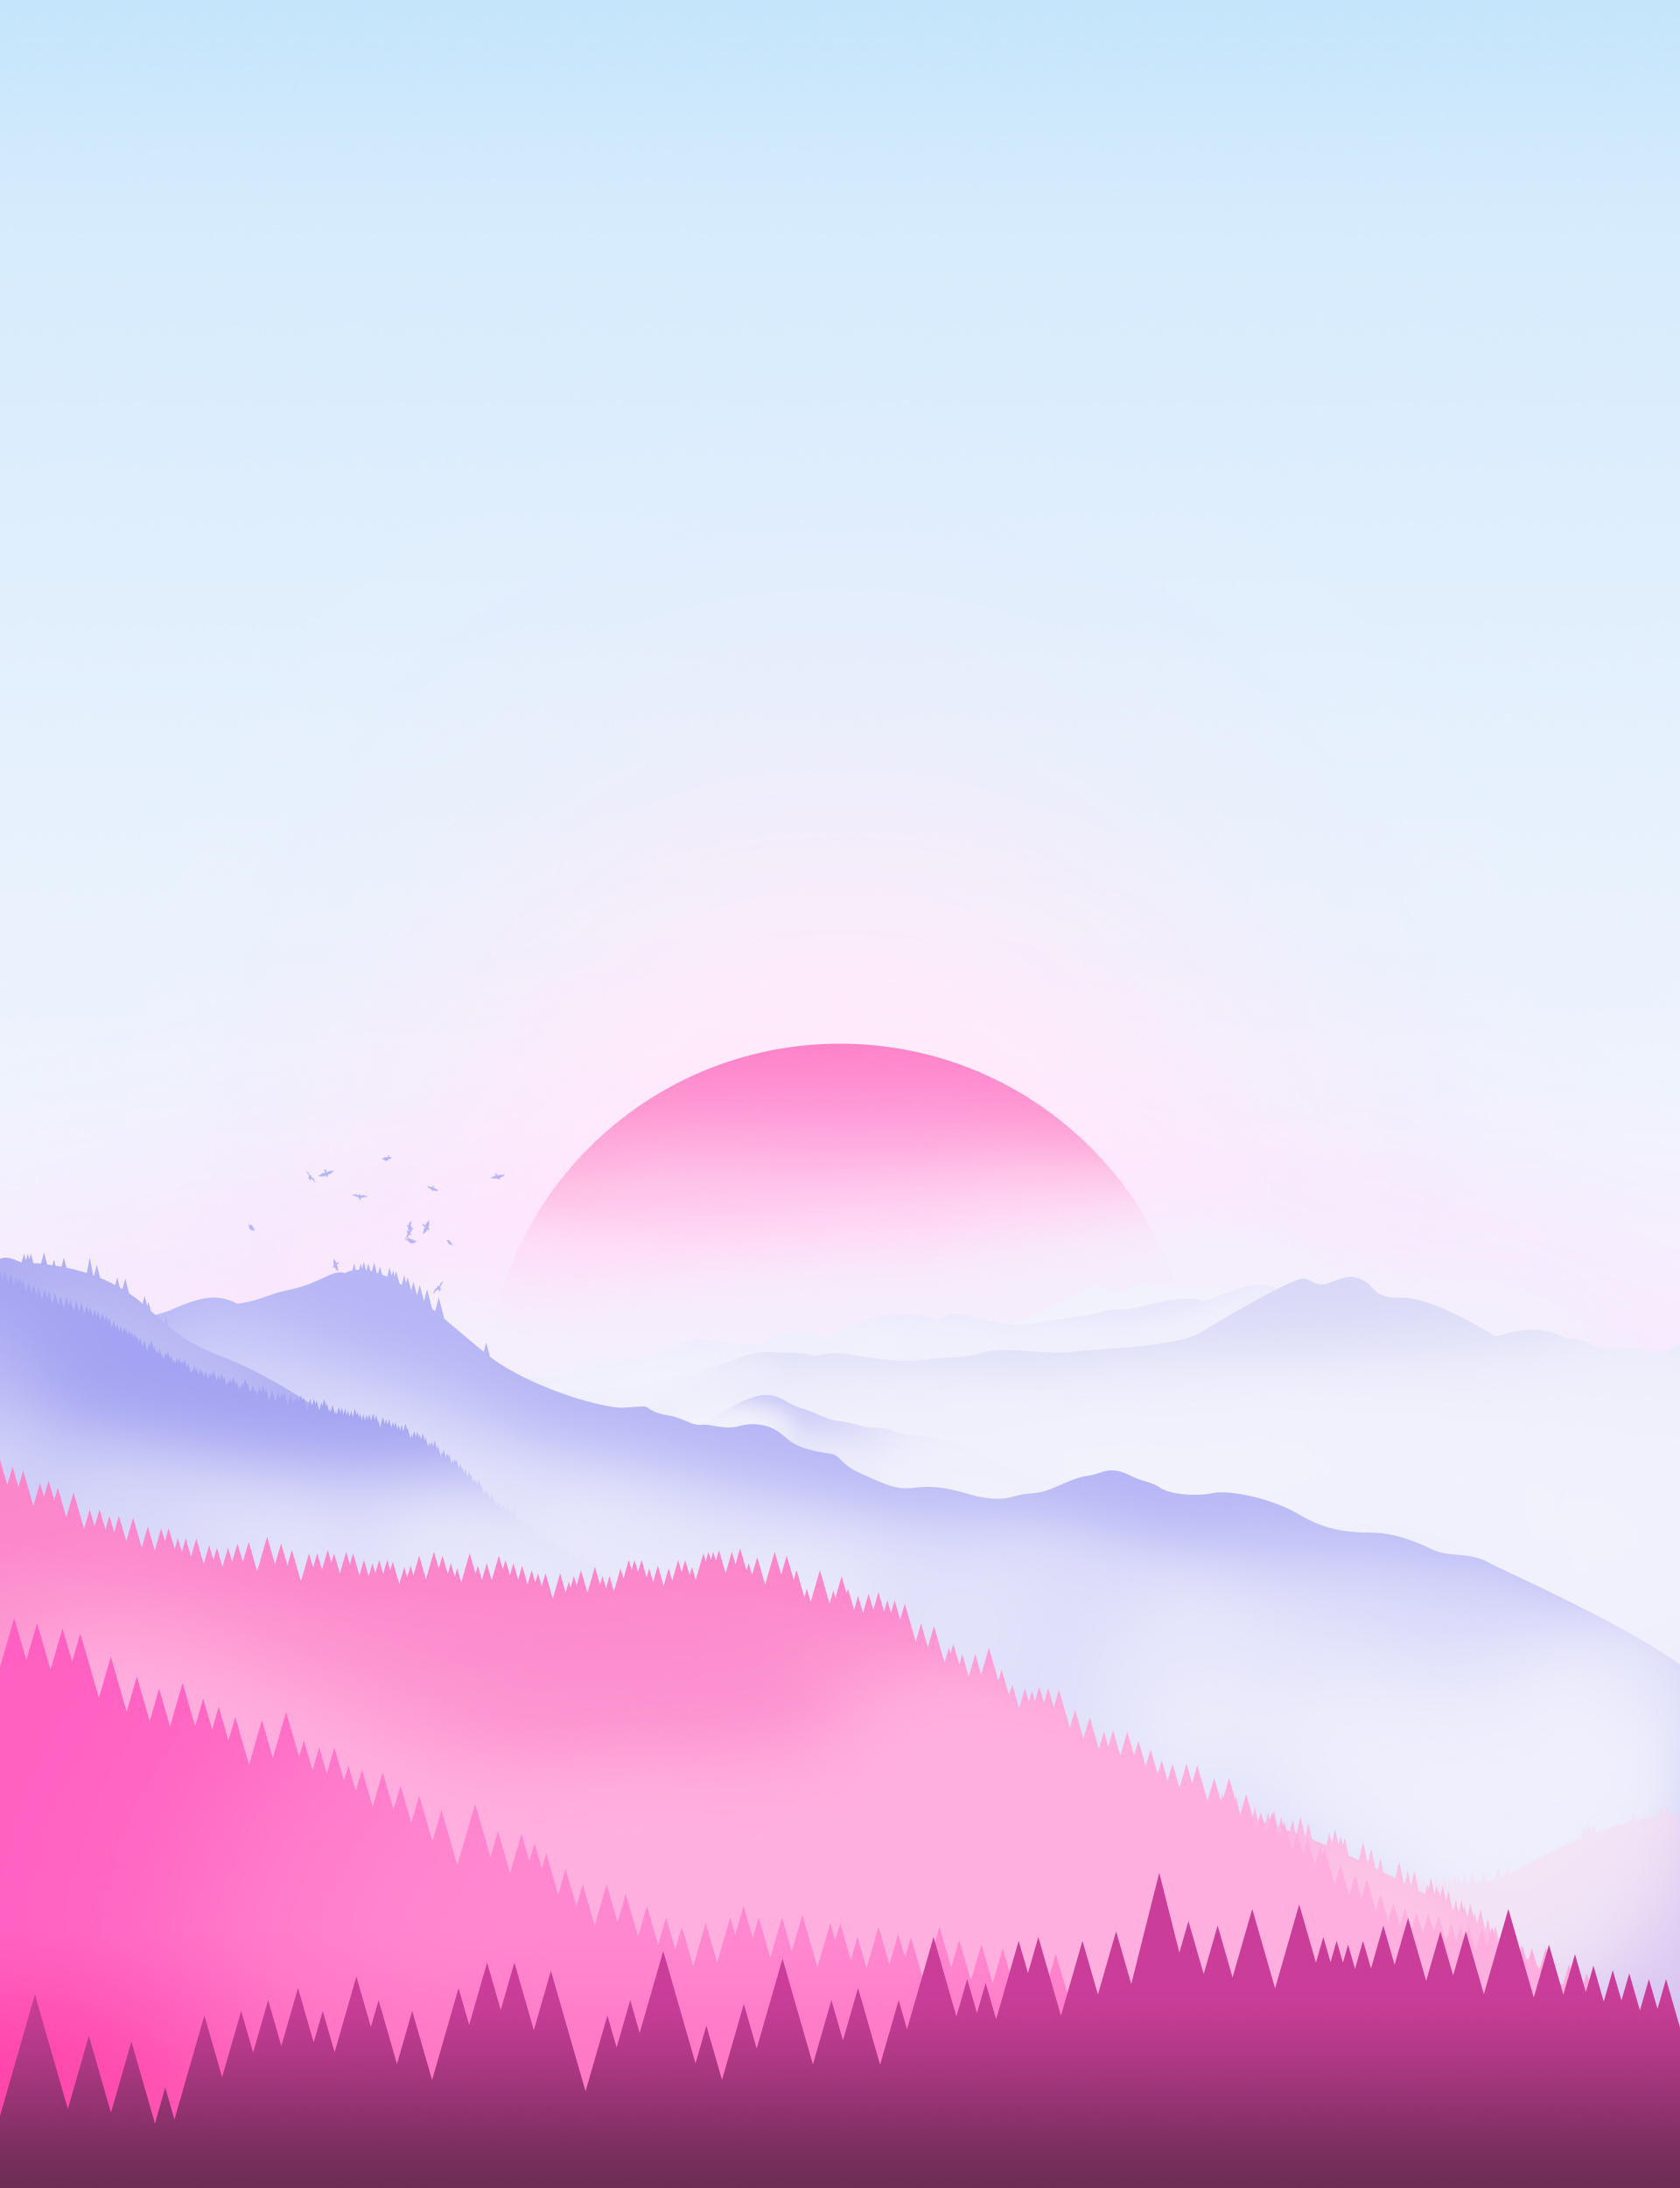 102685 download wallpaper Sunset, Trees, Vector, Art, Sun screensavers and pictures for free